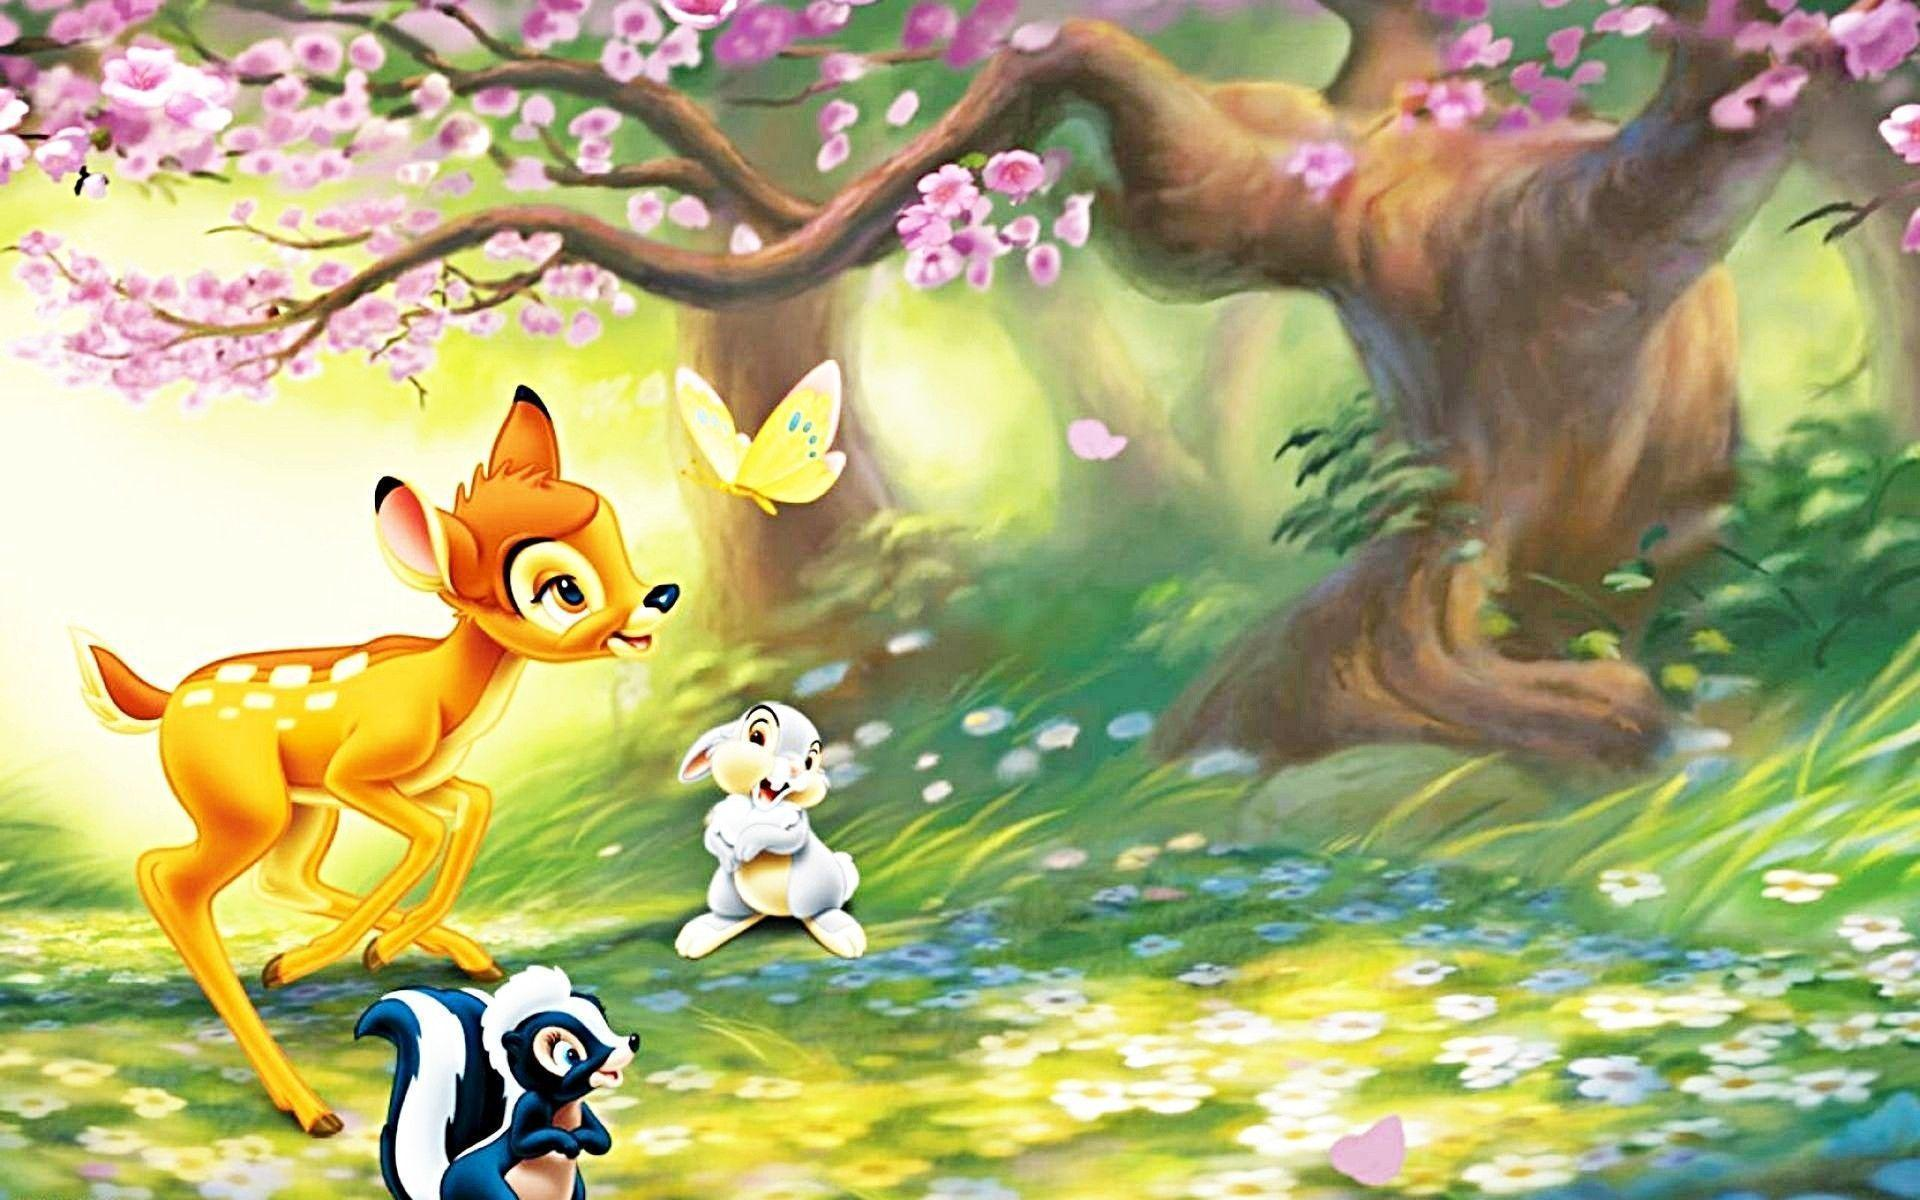 Disney characters wallpapers wallpaper cave - Cute cartoon hd images ...